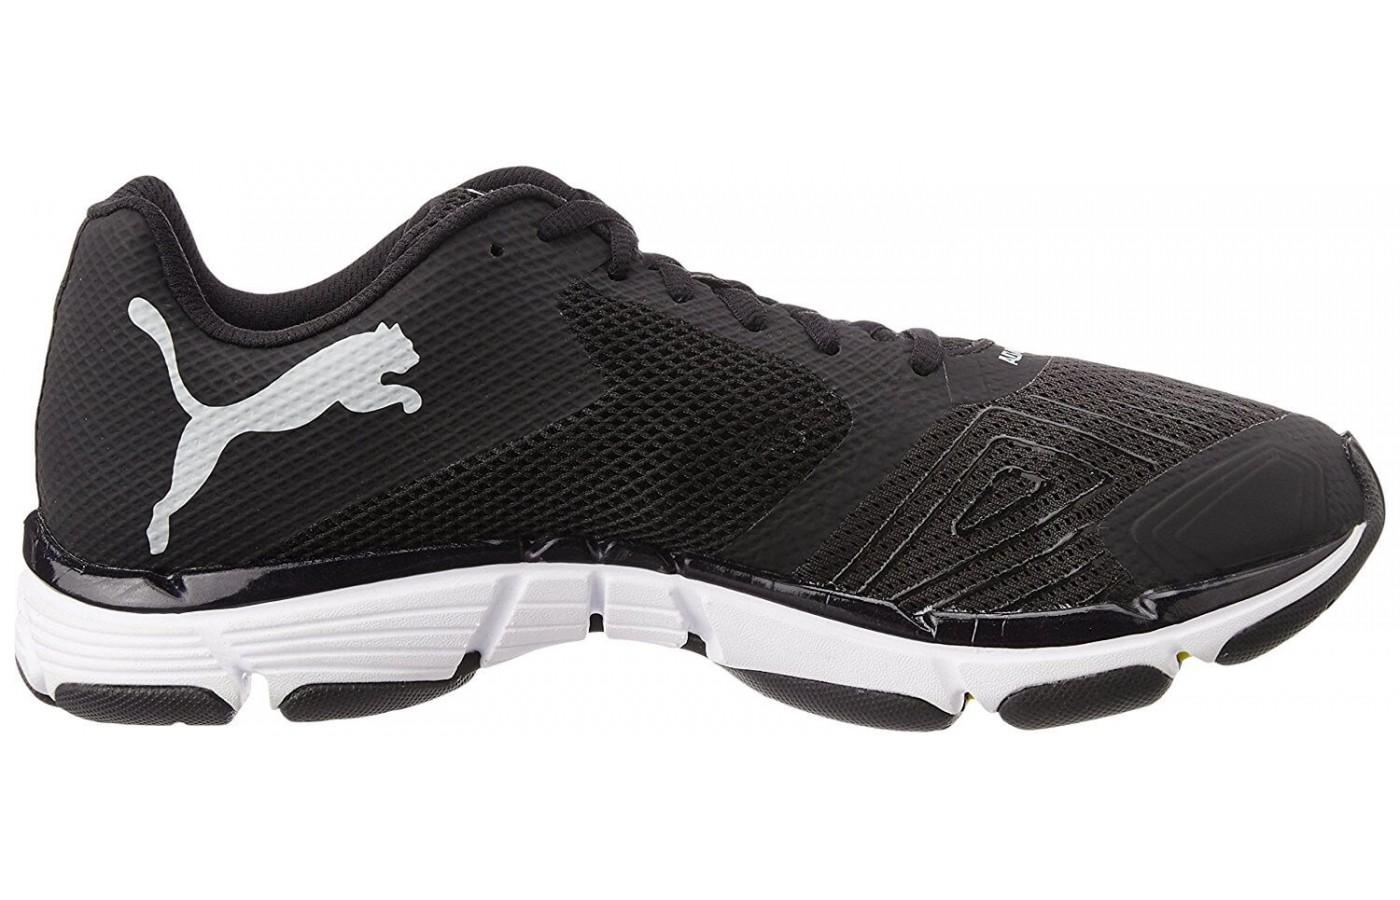 ... the Puma Mobium Ride v2 features the signature Puma logo ... 72e53b86e